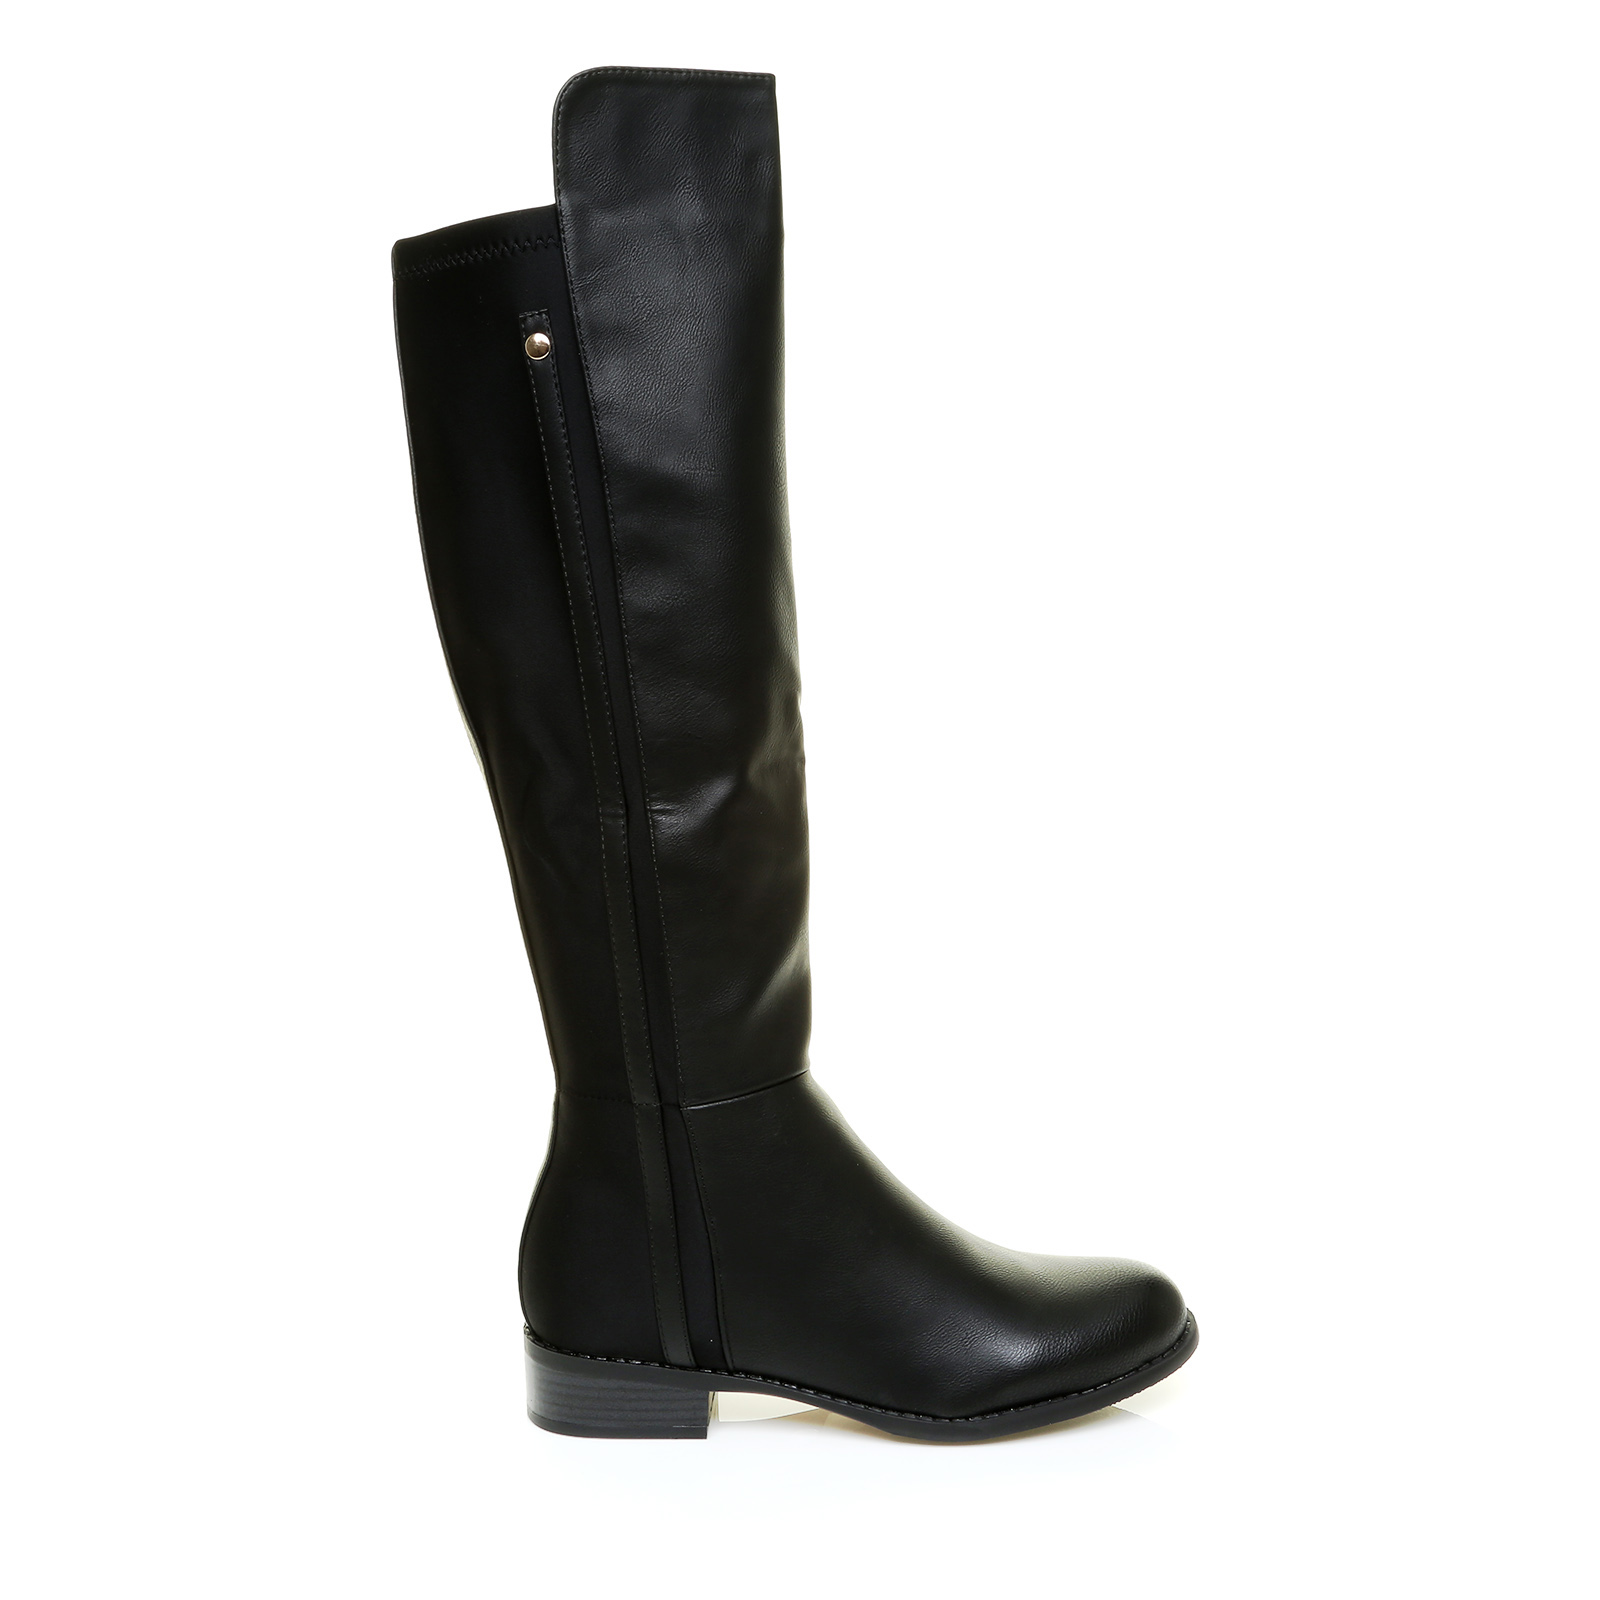 Innovative Horseback Riding Boots For Women | Fashion Belief